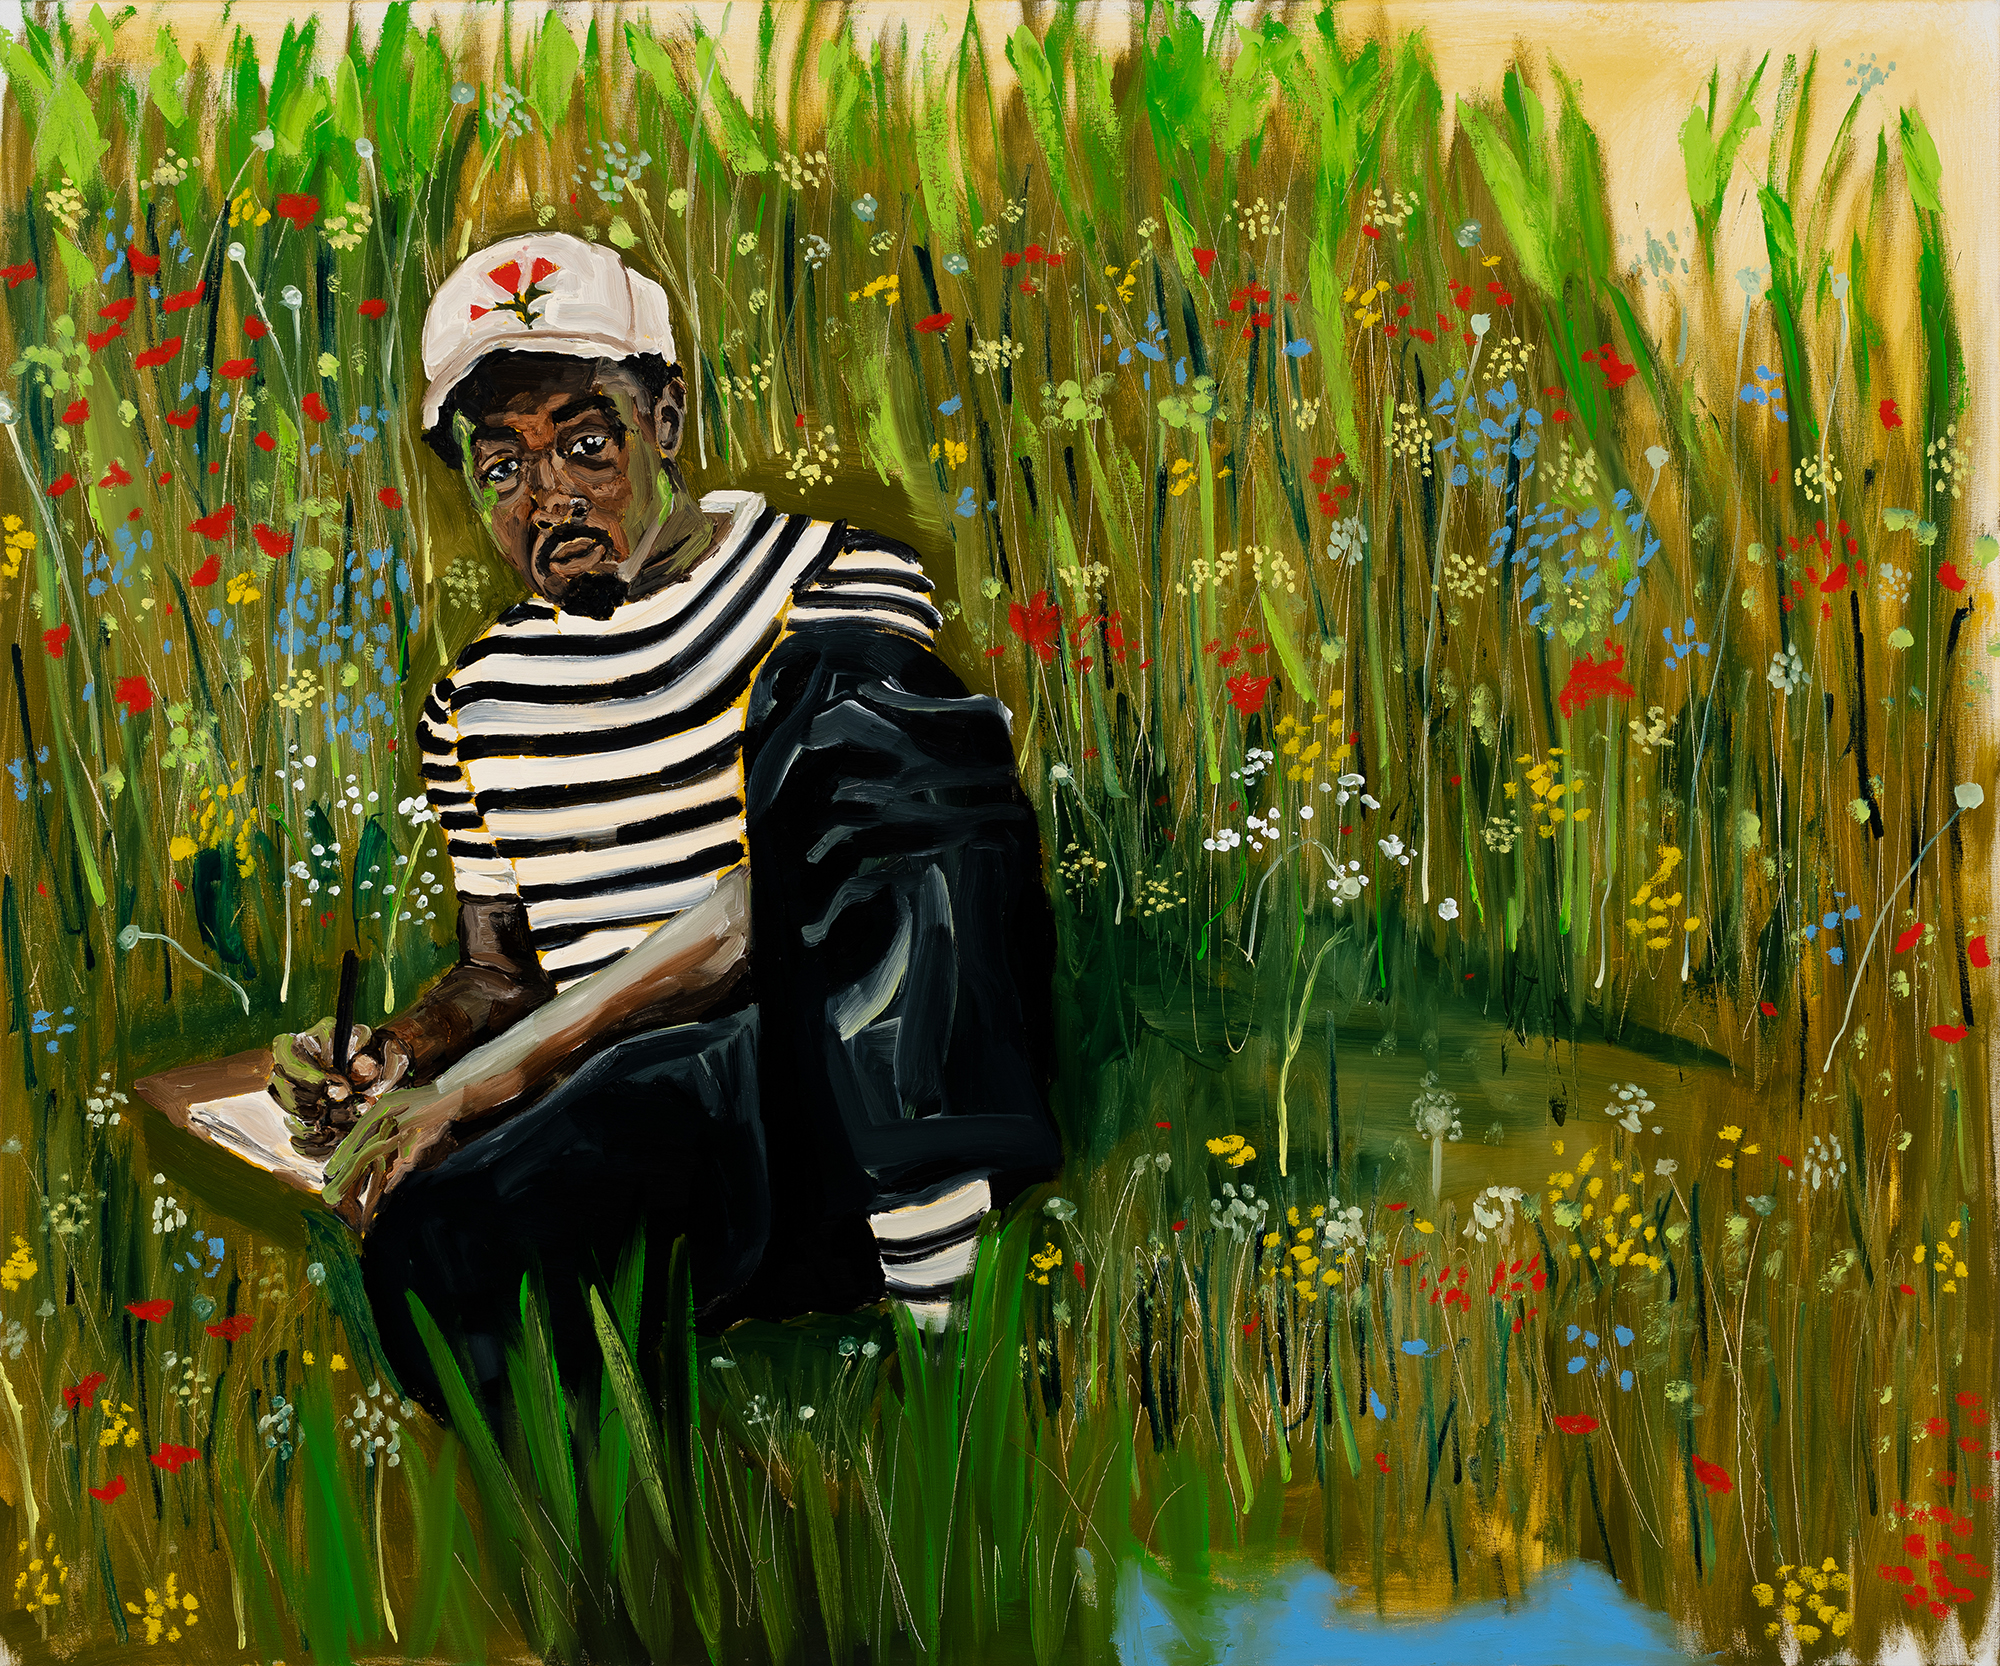 Jerrell Gibbs. For Thomas. 2021. The Baltimore Museum of Art: Purchase with exchange funds from the Pearlstone Family Fund and partial gift of The Andy Warhol Foundation for the Visual Arts, Inc. BMA 2021.159